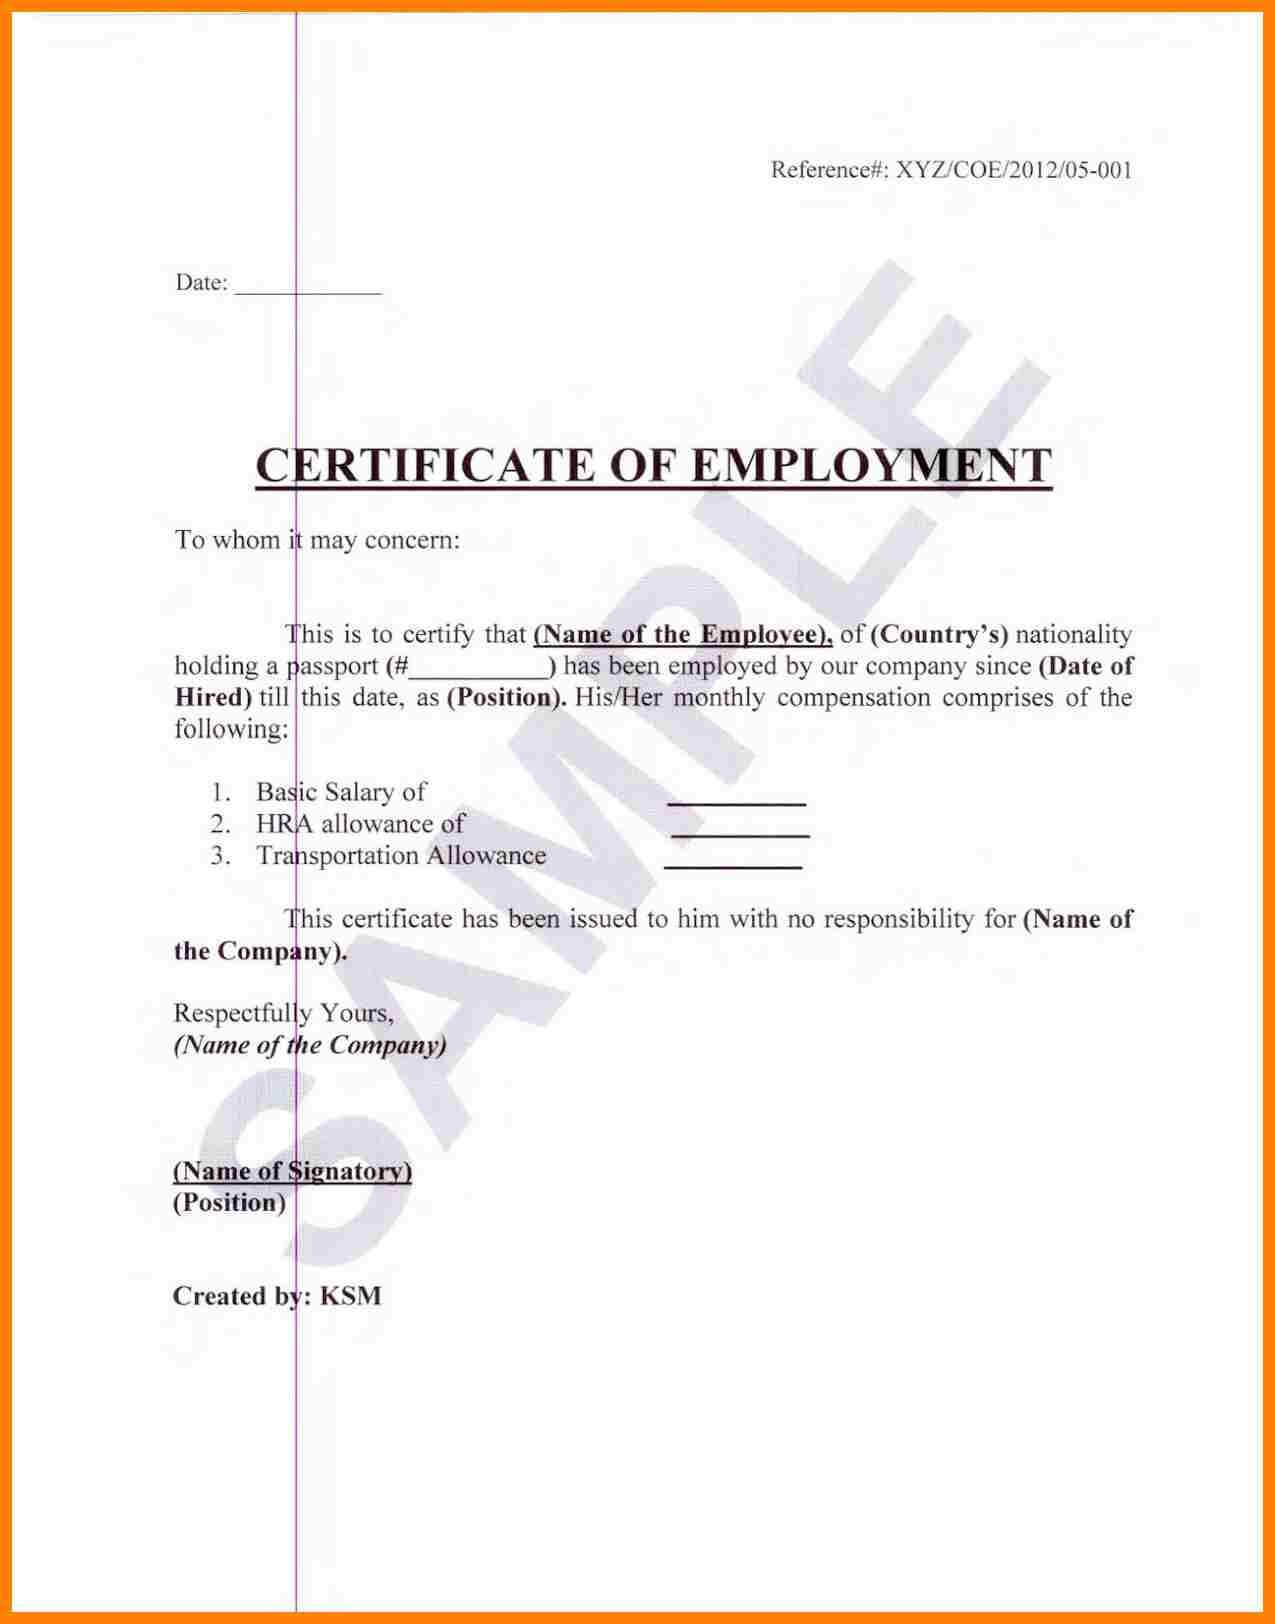 Sample Certification Employment Certificate Tugon Med Clinic Intended For Certificate Of Employment Template